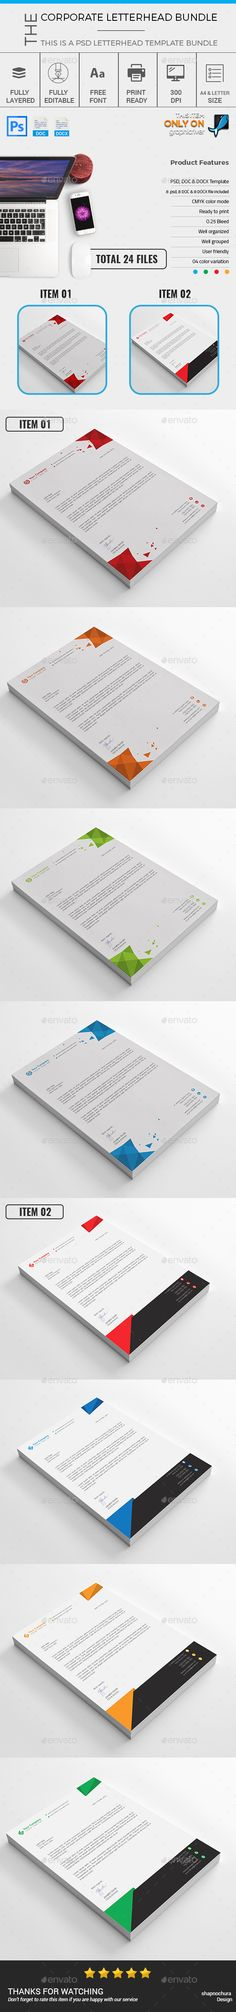 Corporate Letterhead Template Bundle - MS Word, PSD Letterhead - corporate letterhead template